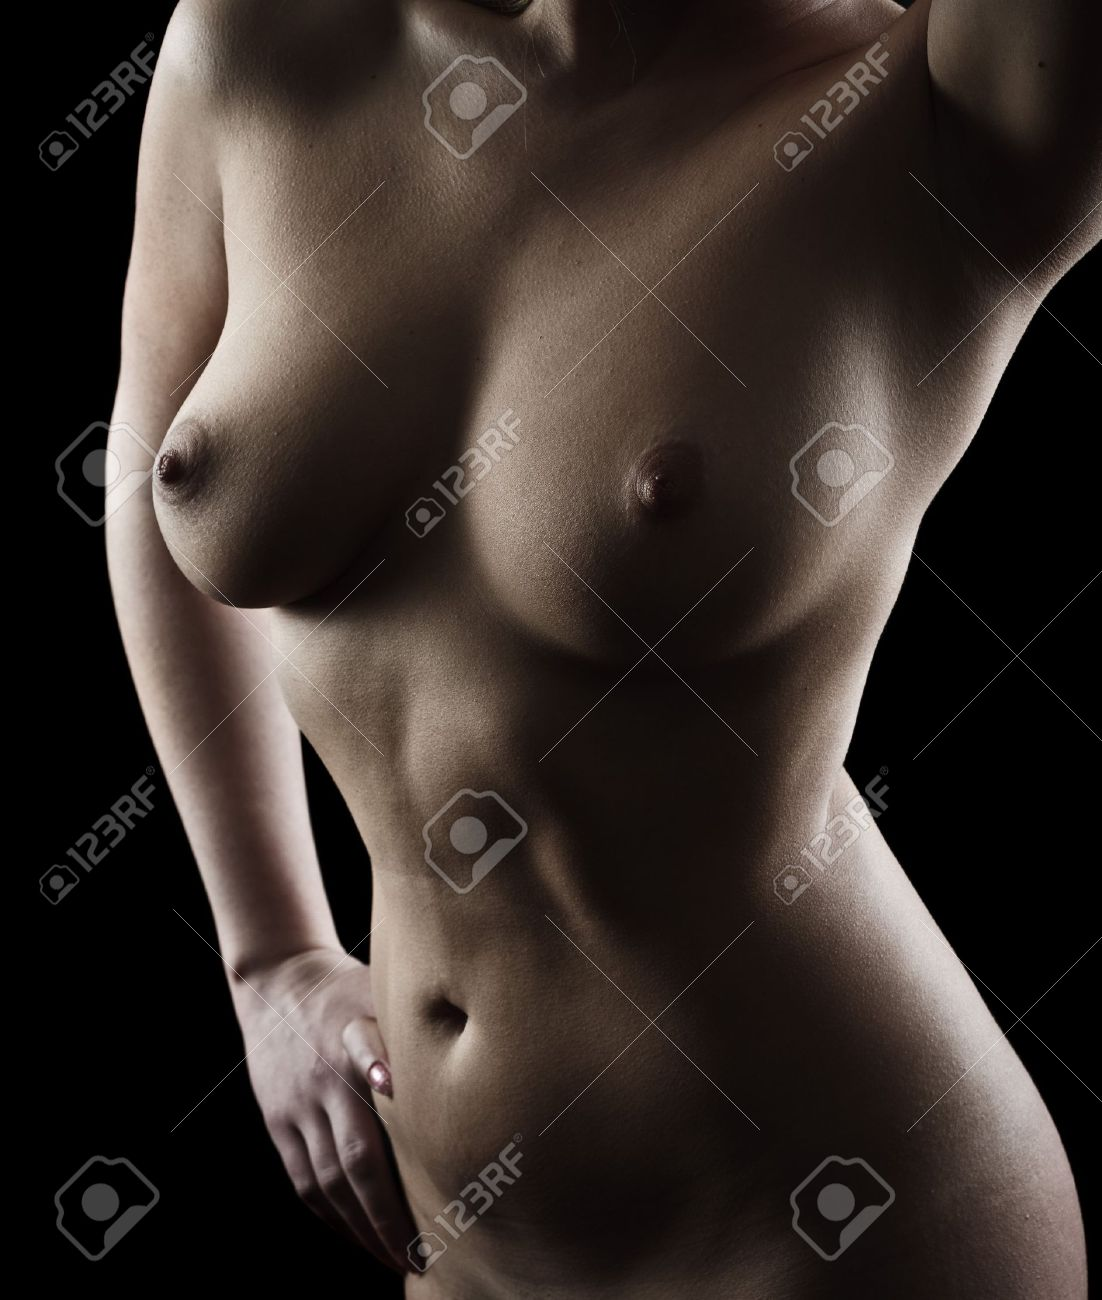 Nude body of a young woman isolated on black background Stock Photo - 11272010